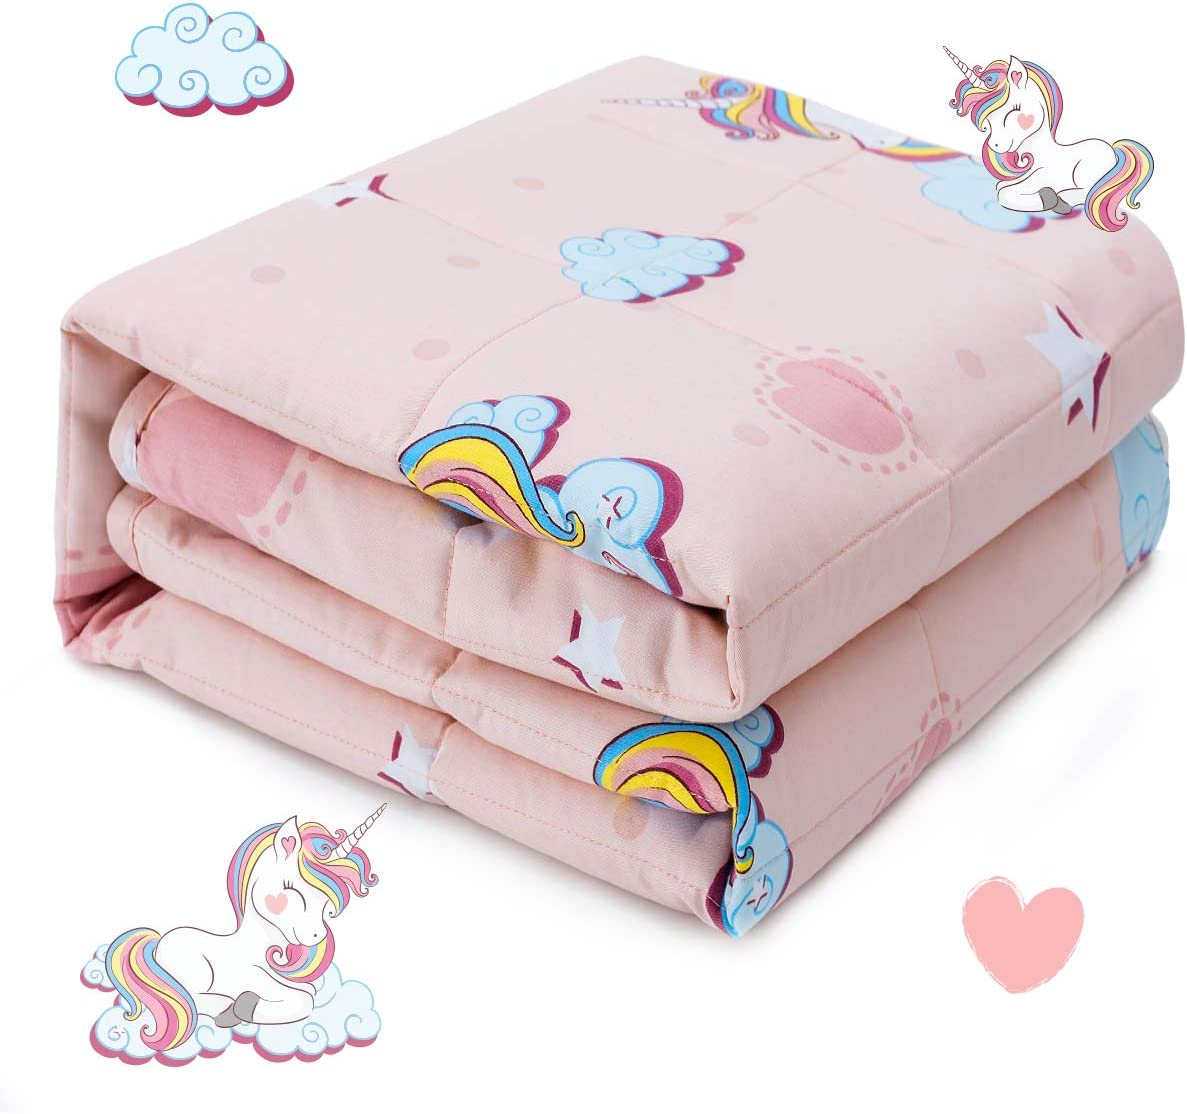 3lbs 36x48 inch Minky Dotted Cover Machine Washable Pink Rainbow Unicorn Sivio Kids Weighted Blanket /& Removable Duvet Cover Set 100/% Cotton Weighted Comforter with Glass Beads